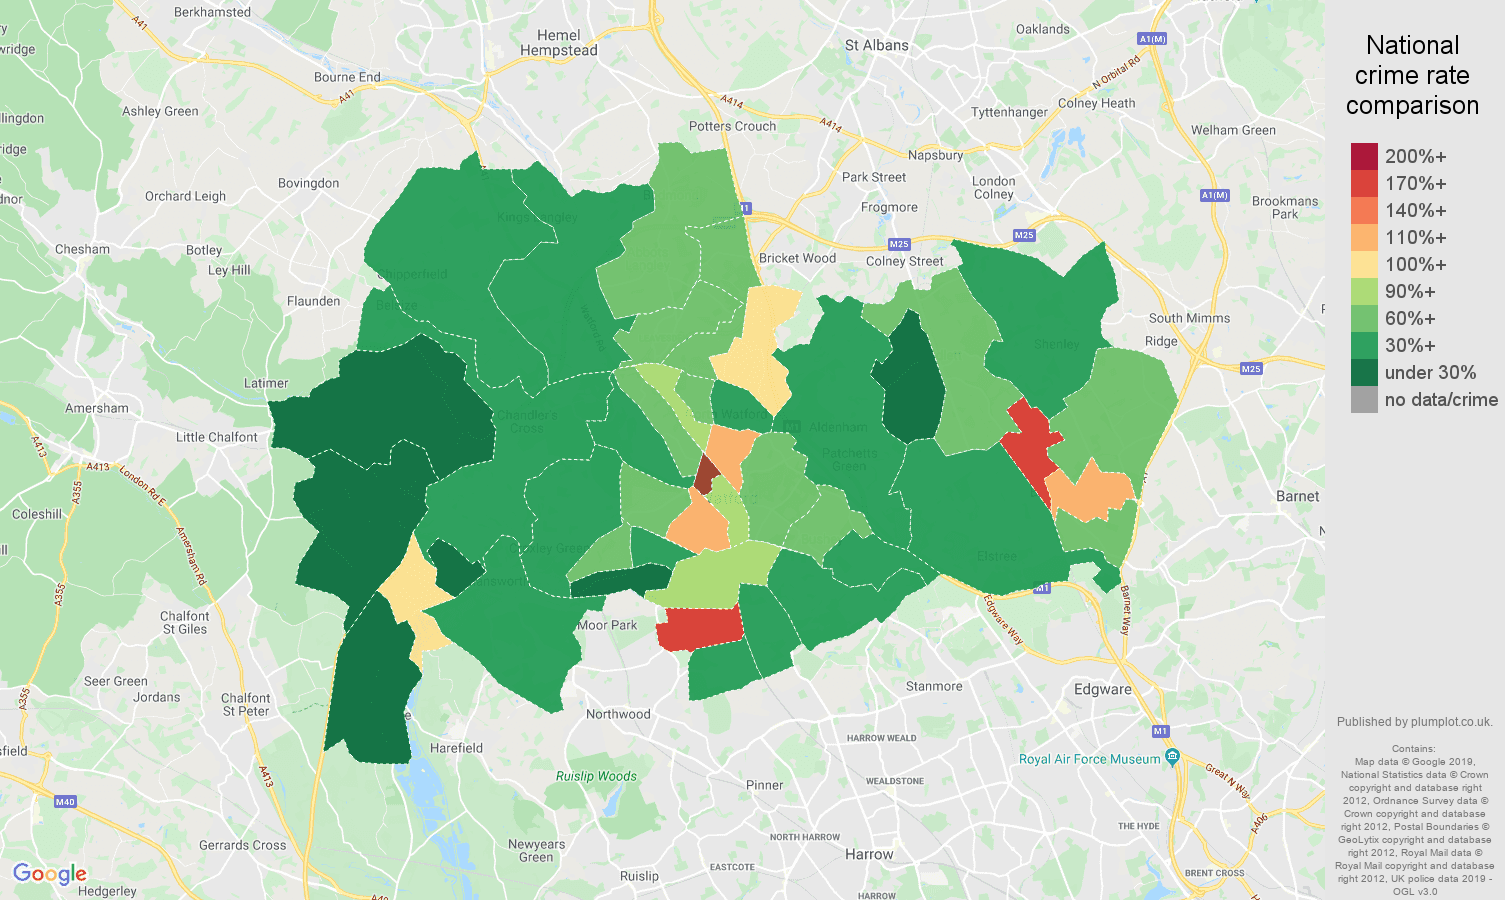 Watford public order crime rate comparison map